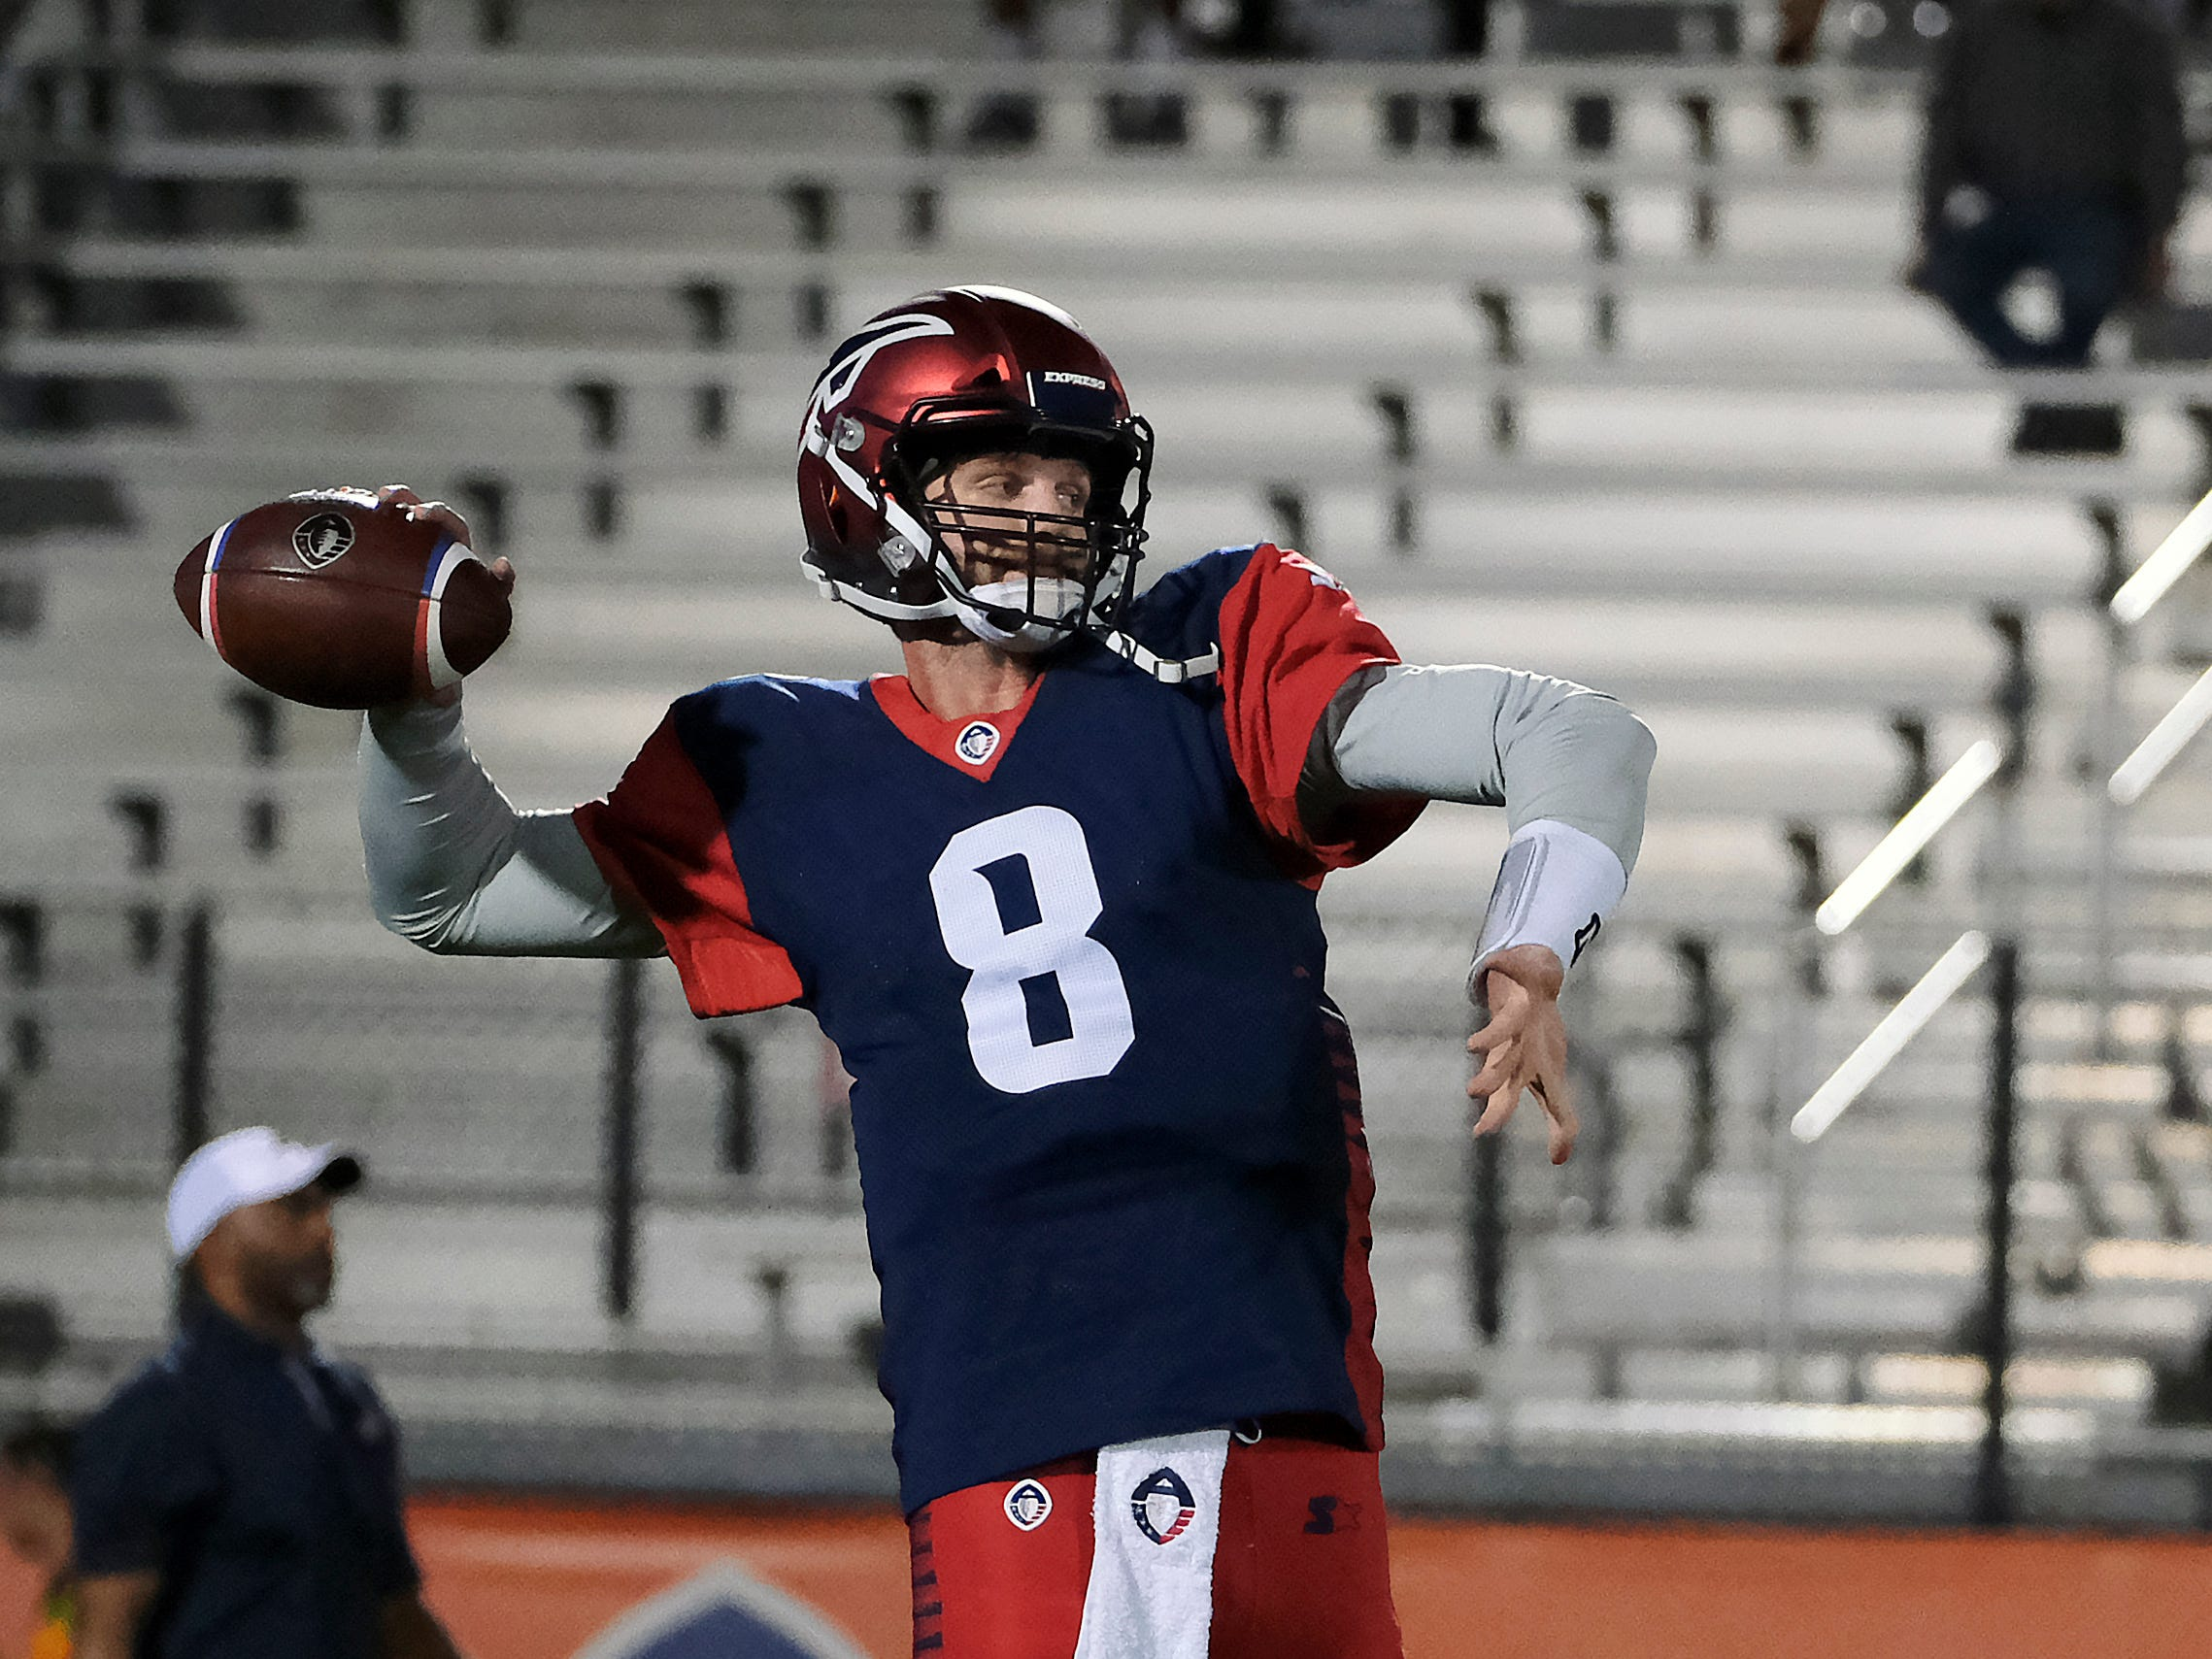 Memphis Express QB Zach Mettenberger warms up prior to their game against the Orlando Apollos at Spectrum Stadium in Orlando, FL on Saturday, February 23, 2019.